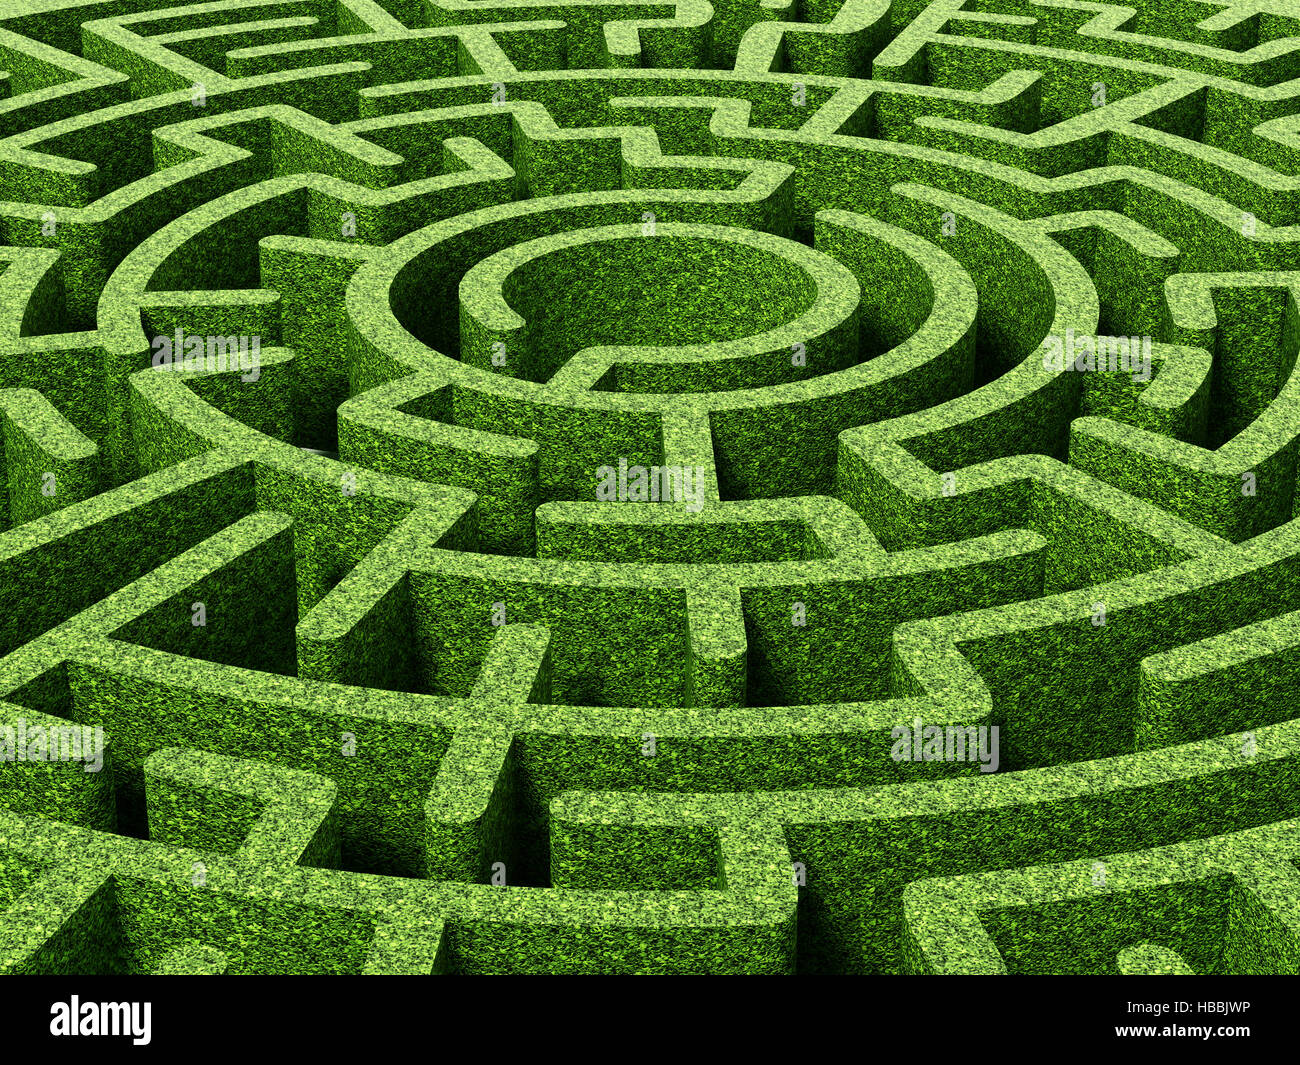 Round garden maze with green bushes as walls. 3D illustration Stock on